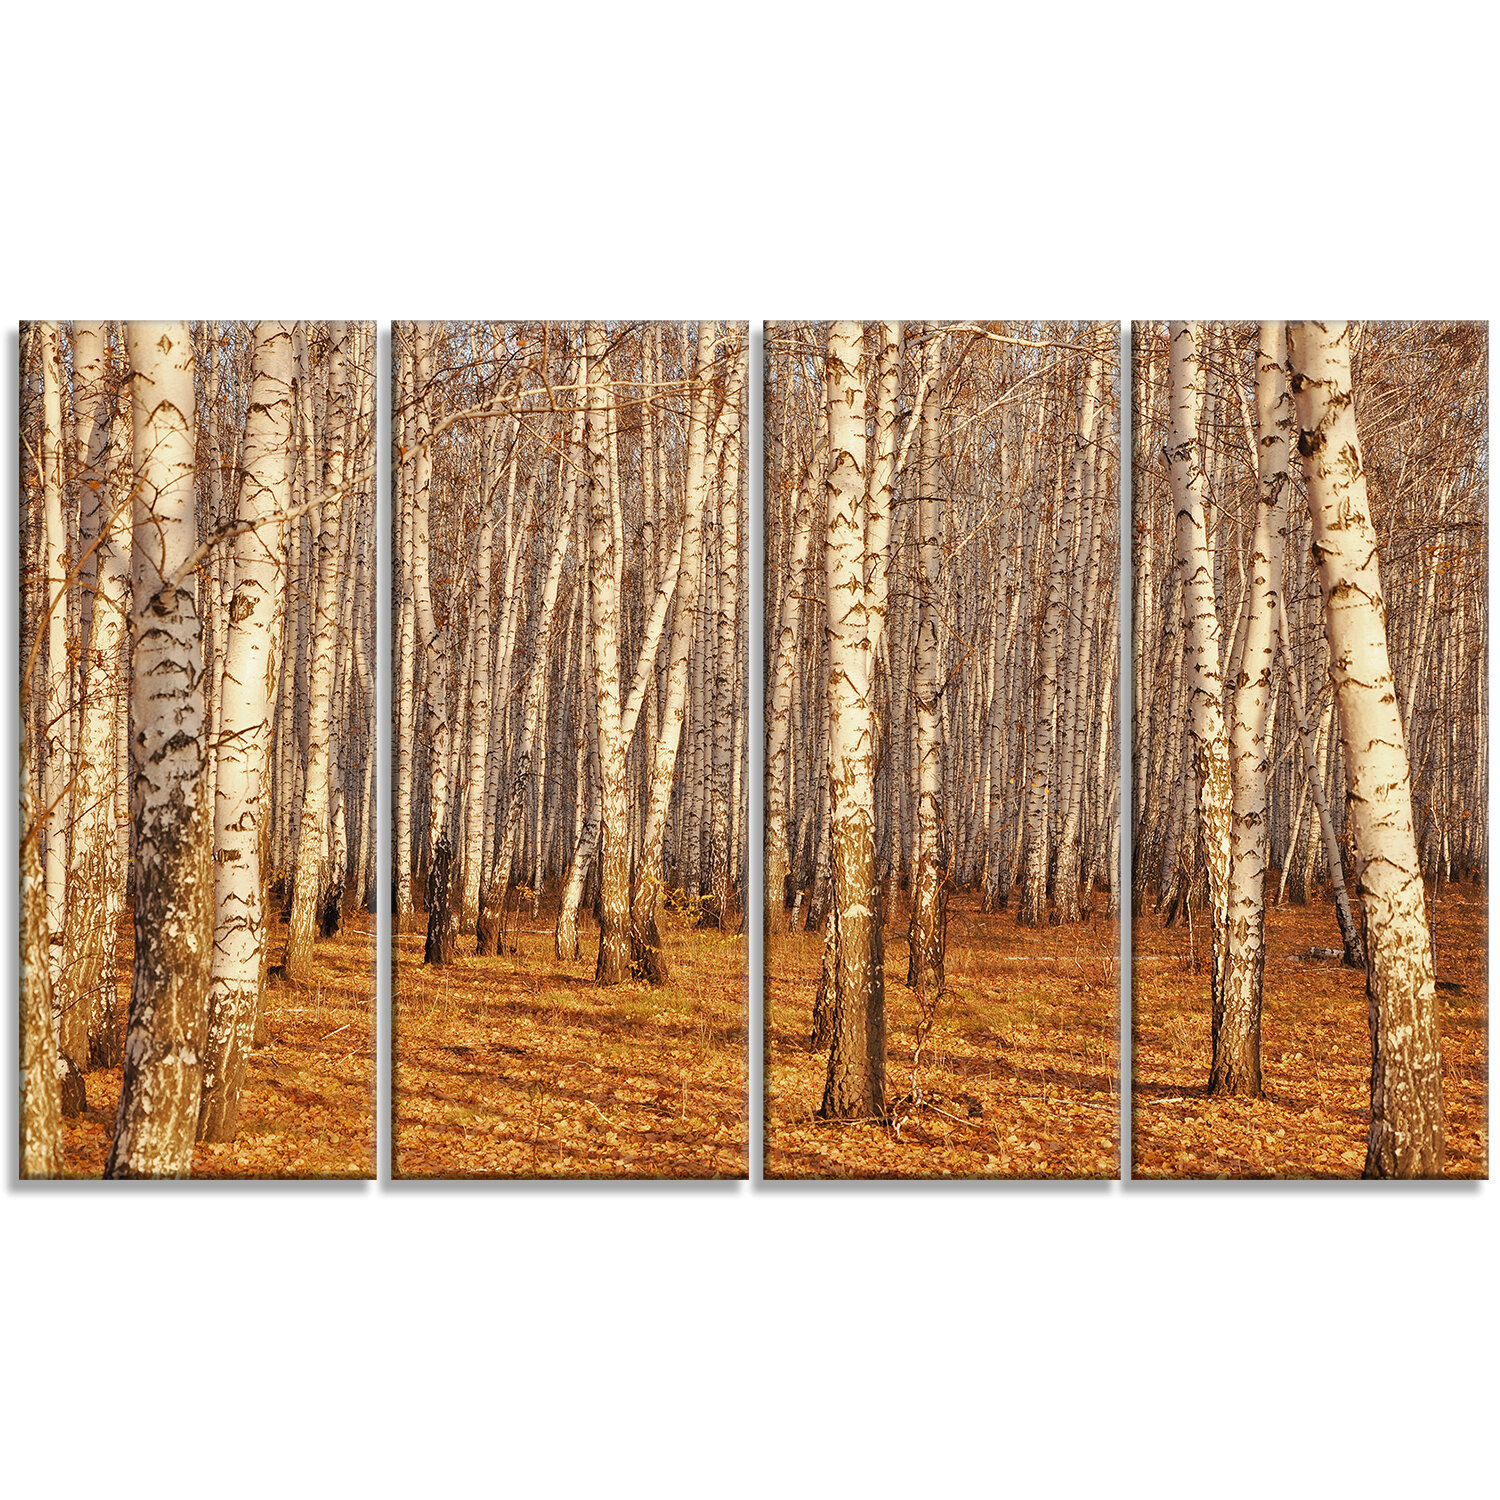 Designart Dense Birch Forest In The Fall 4 Piece Photographic Print On Wrapped Canvas Set Wayfair